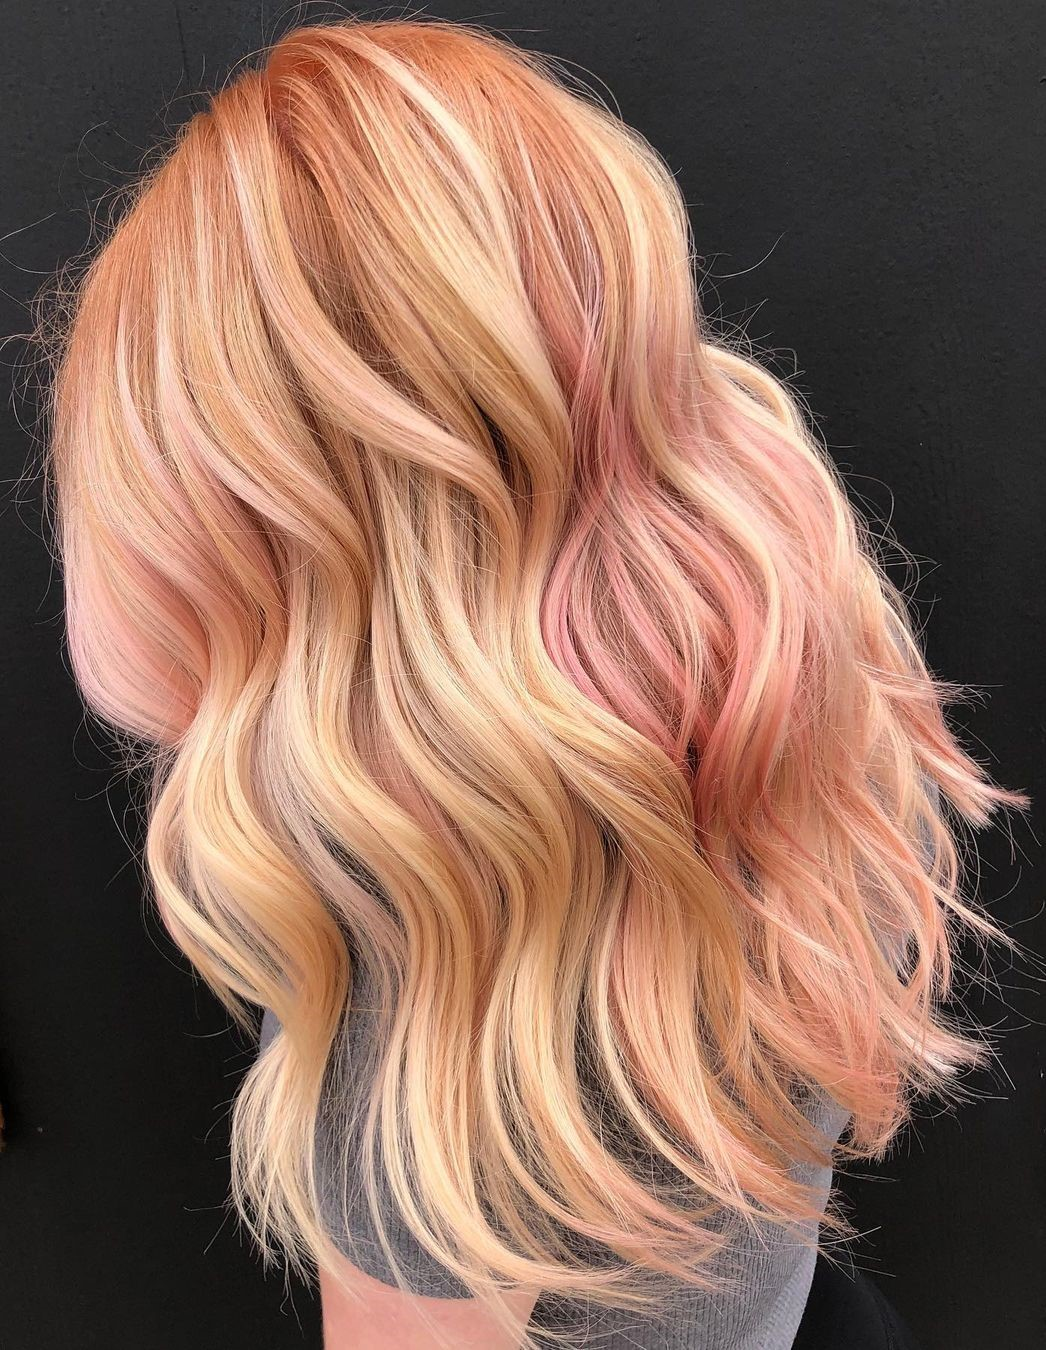 Long Blonde Hair with Rose Gold Highlights